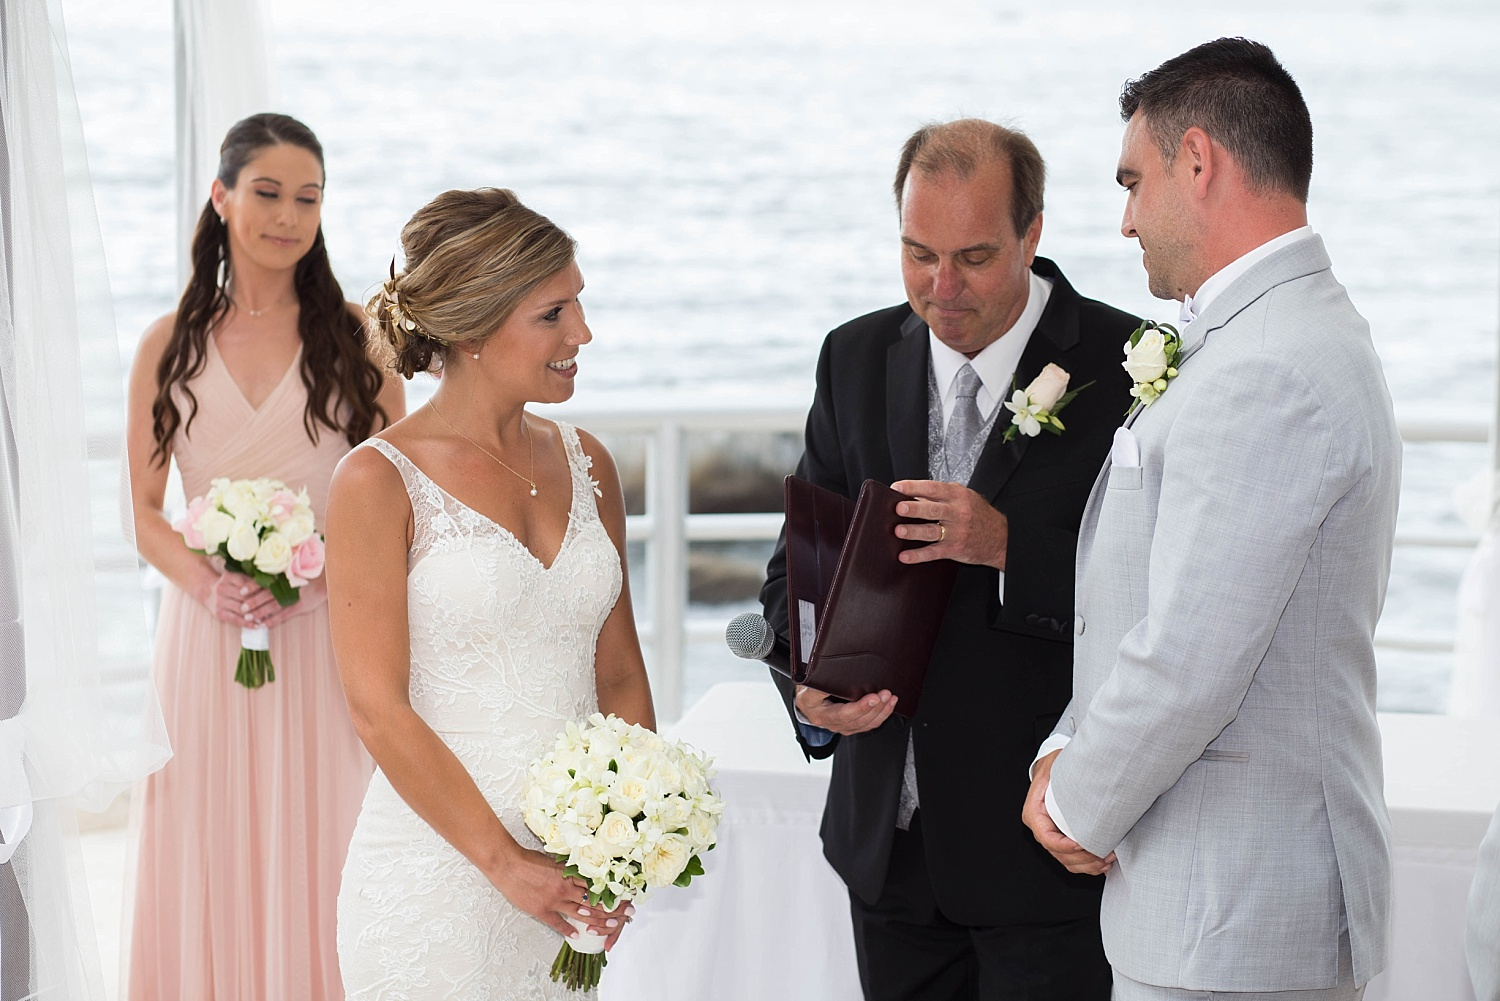 Image: The bride's father is the officiant and her sister is behind them.